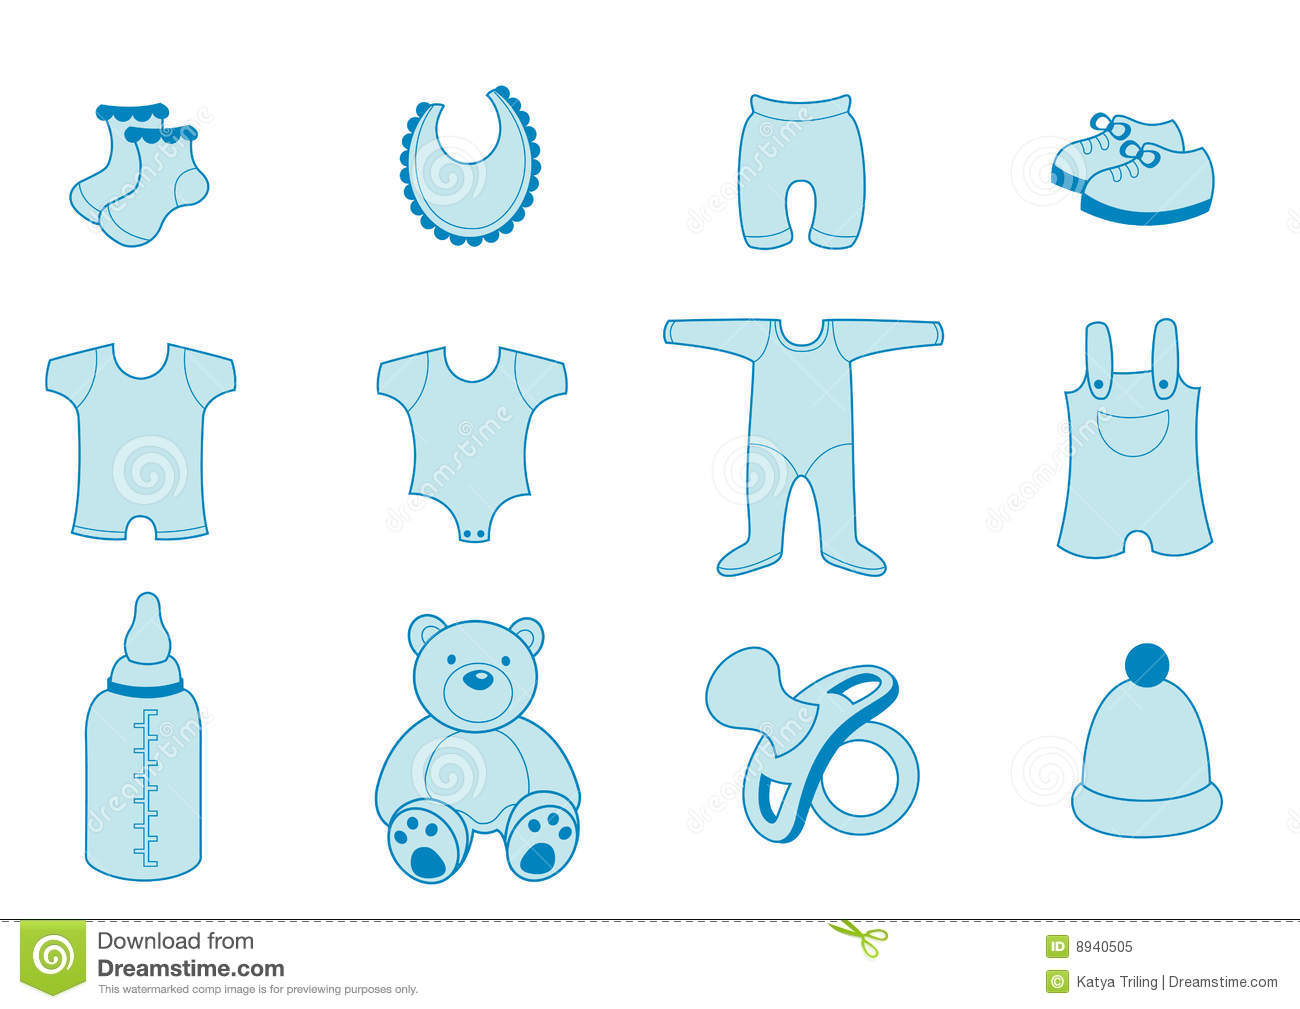 Baby Clothing Silhouette Stock Vector Illustration Of Icon 40978678